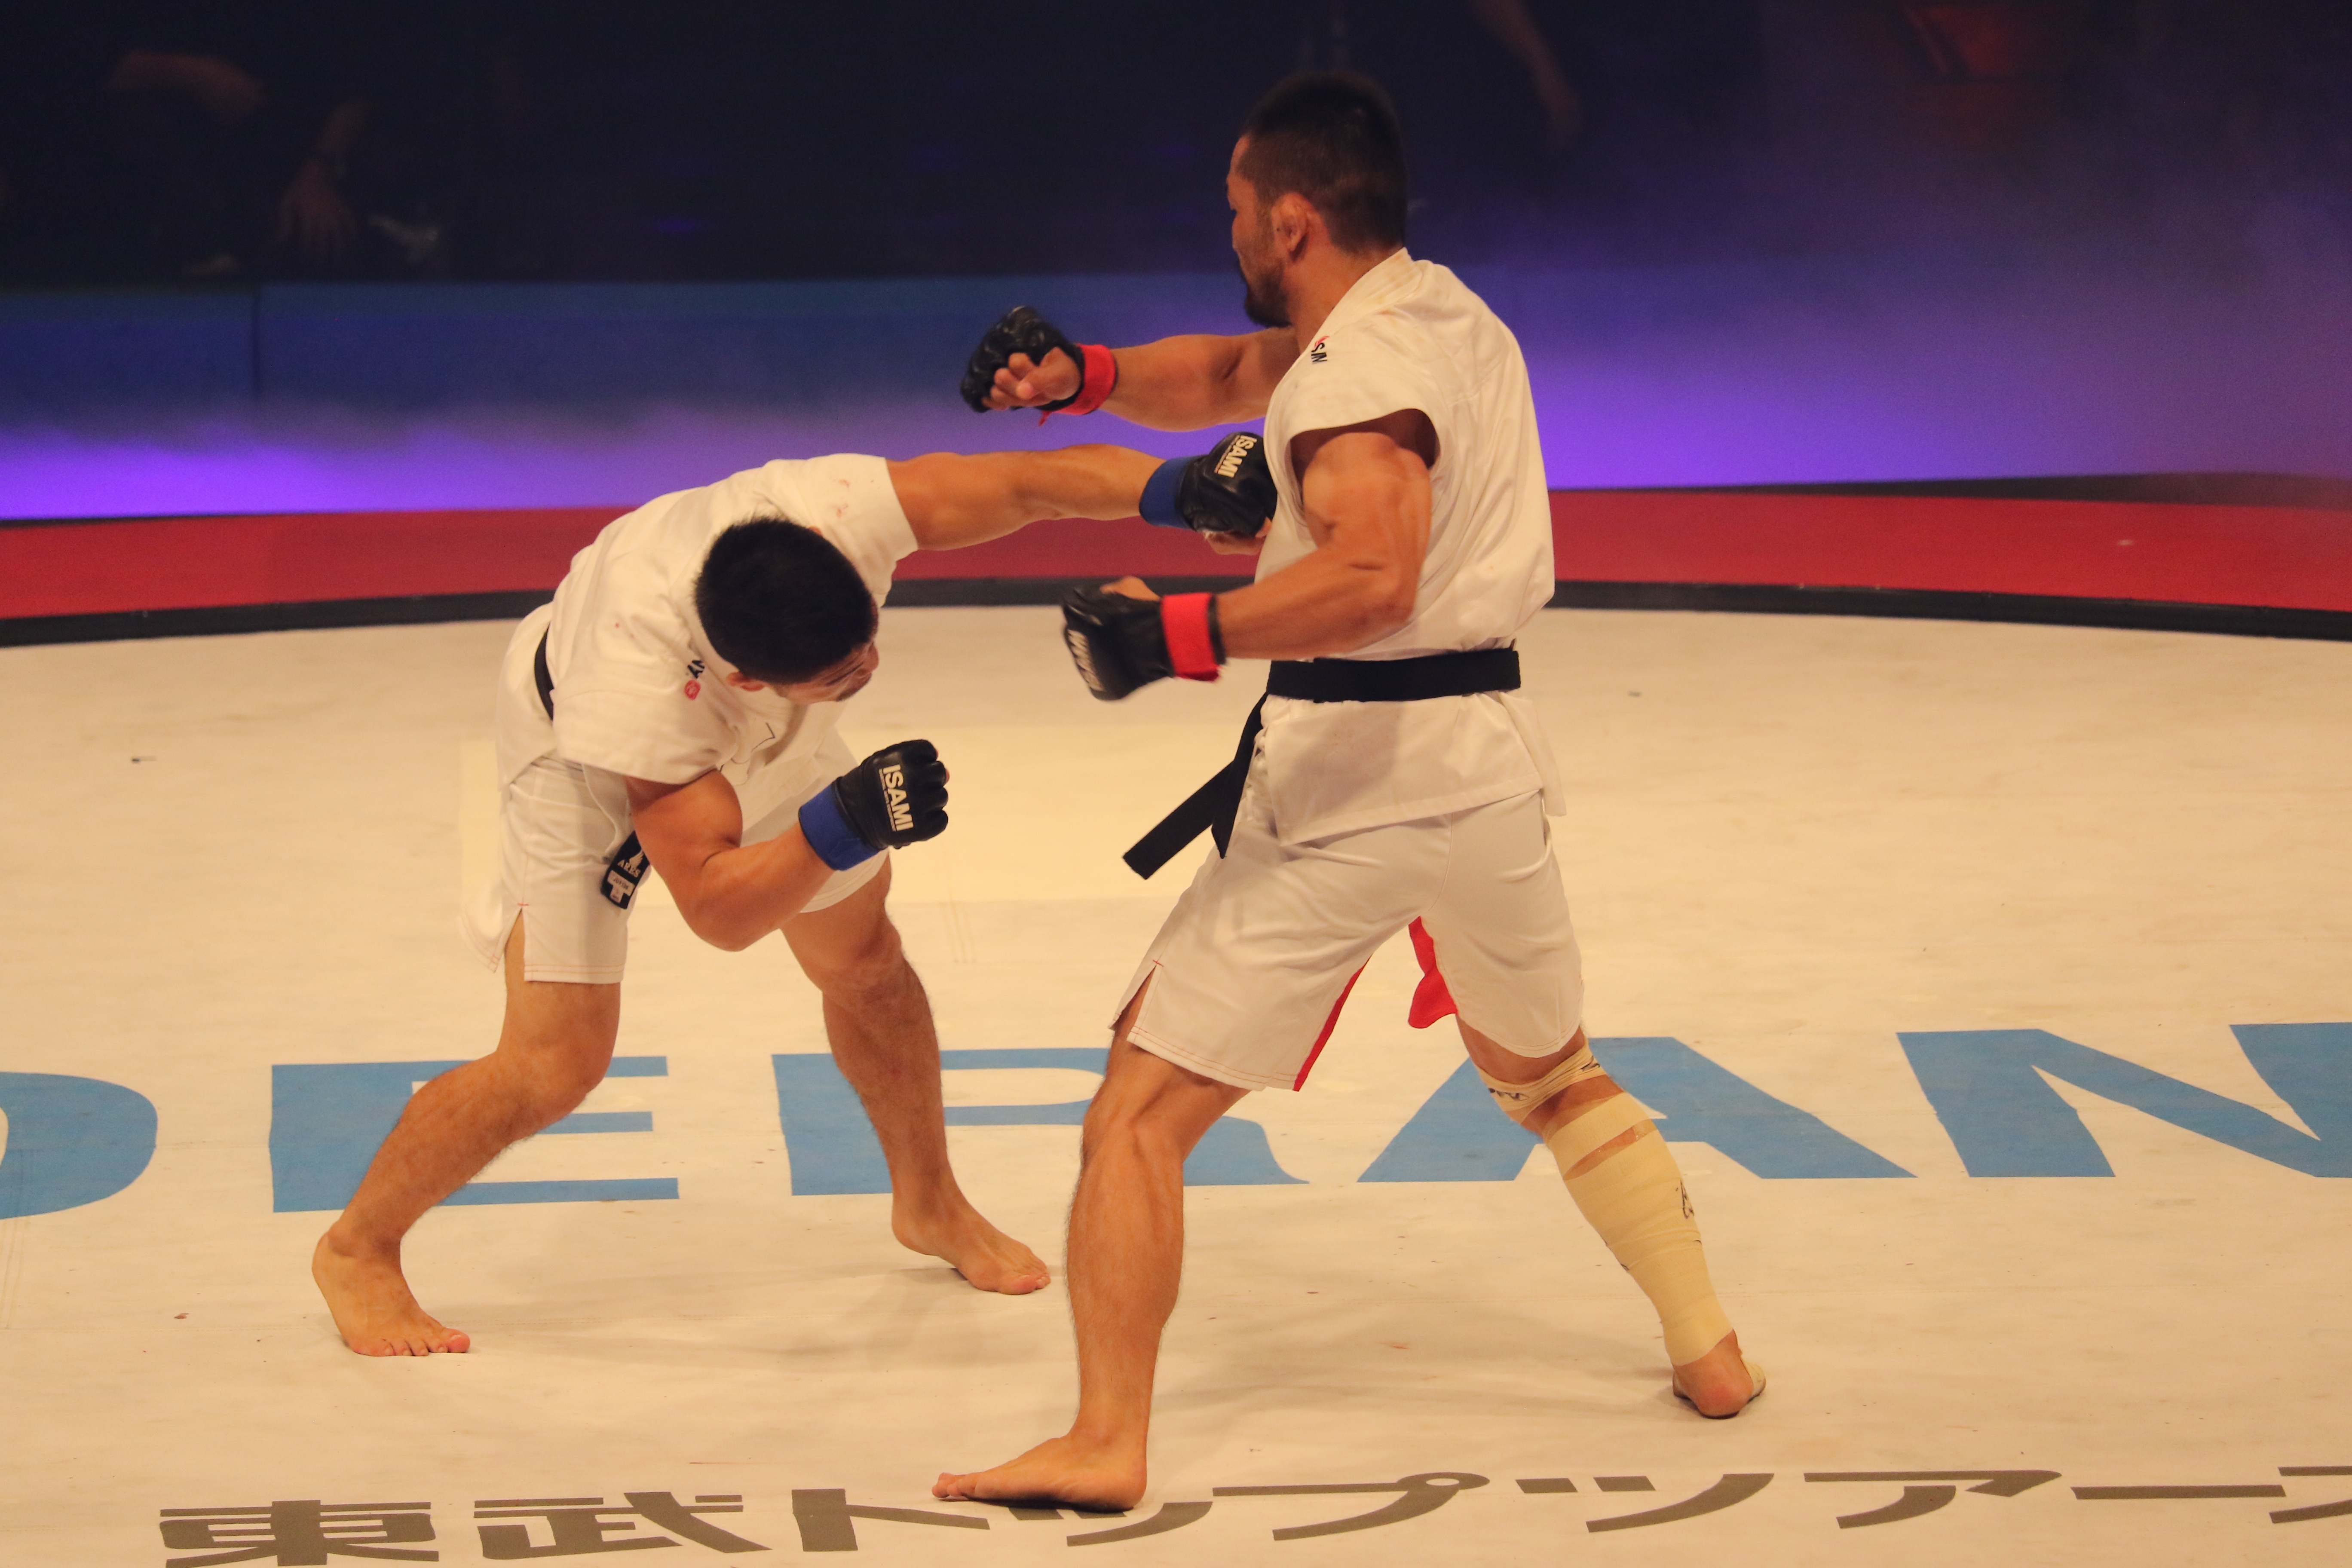 Full Contact Combat Sport >> Full Contact Training Find Out How To Benefit From This Type Of